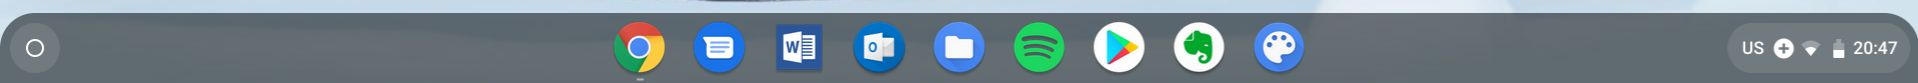 Chrome Canvas op chromebook app menu balk